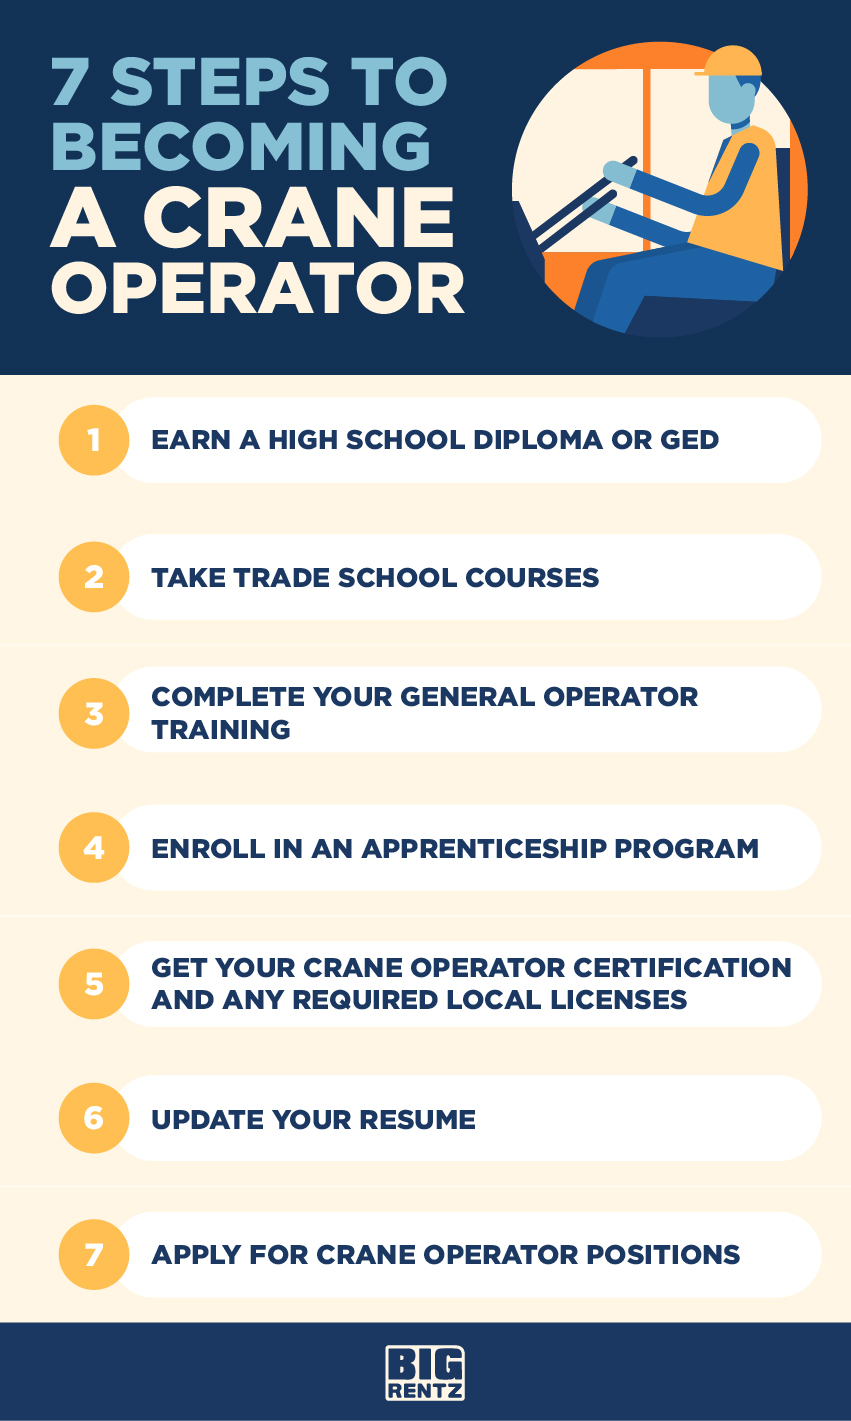 7 steps to becoming a crane operator